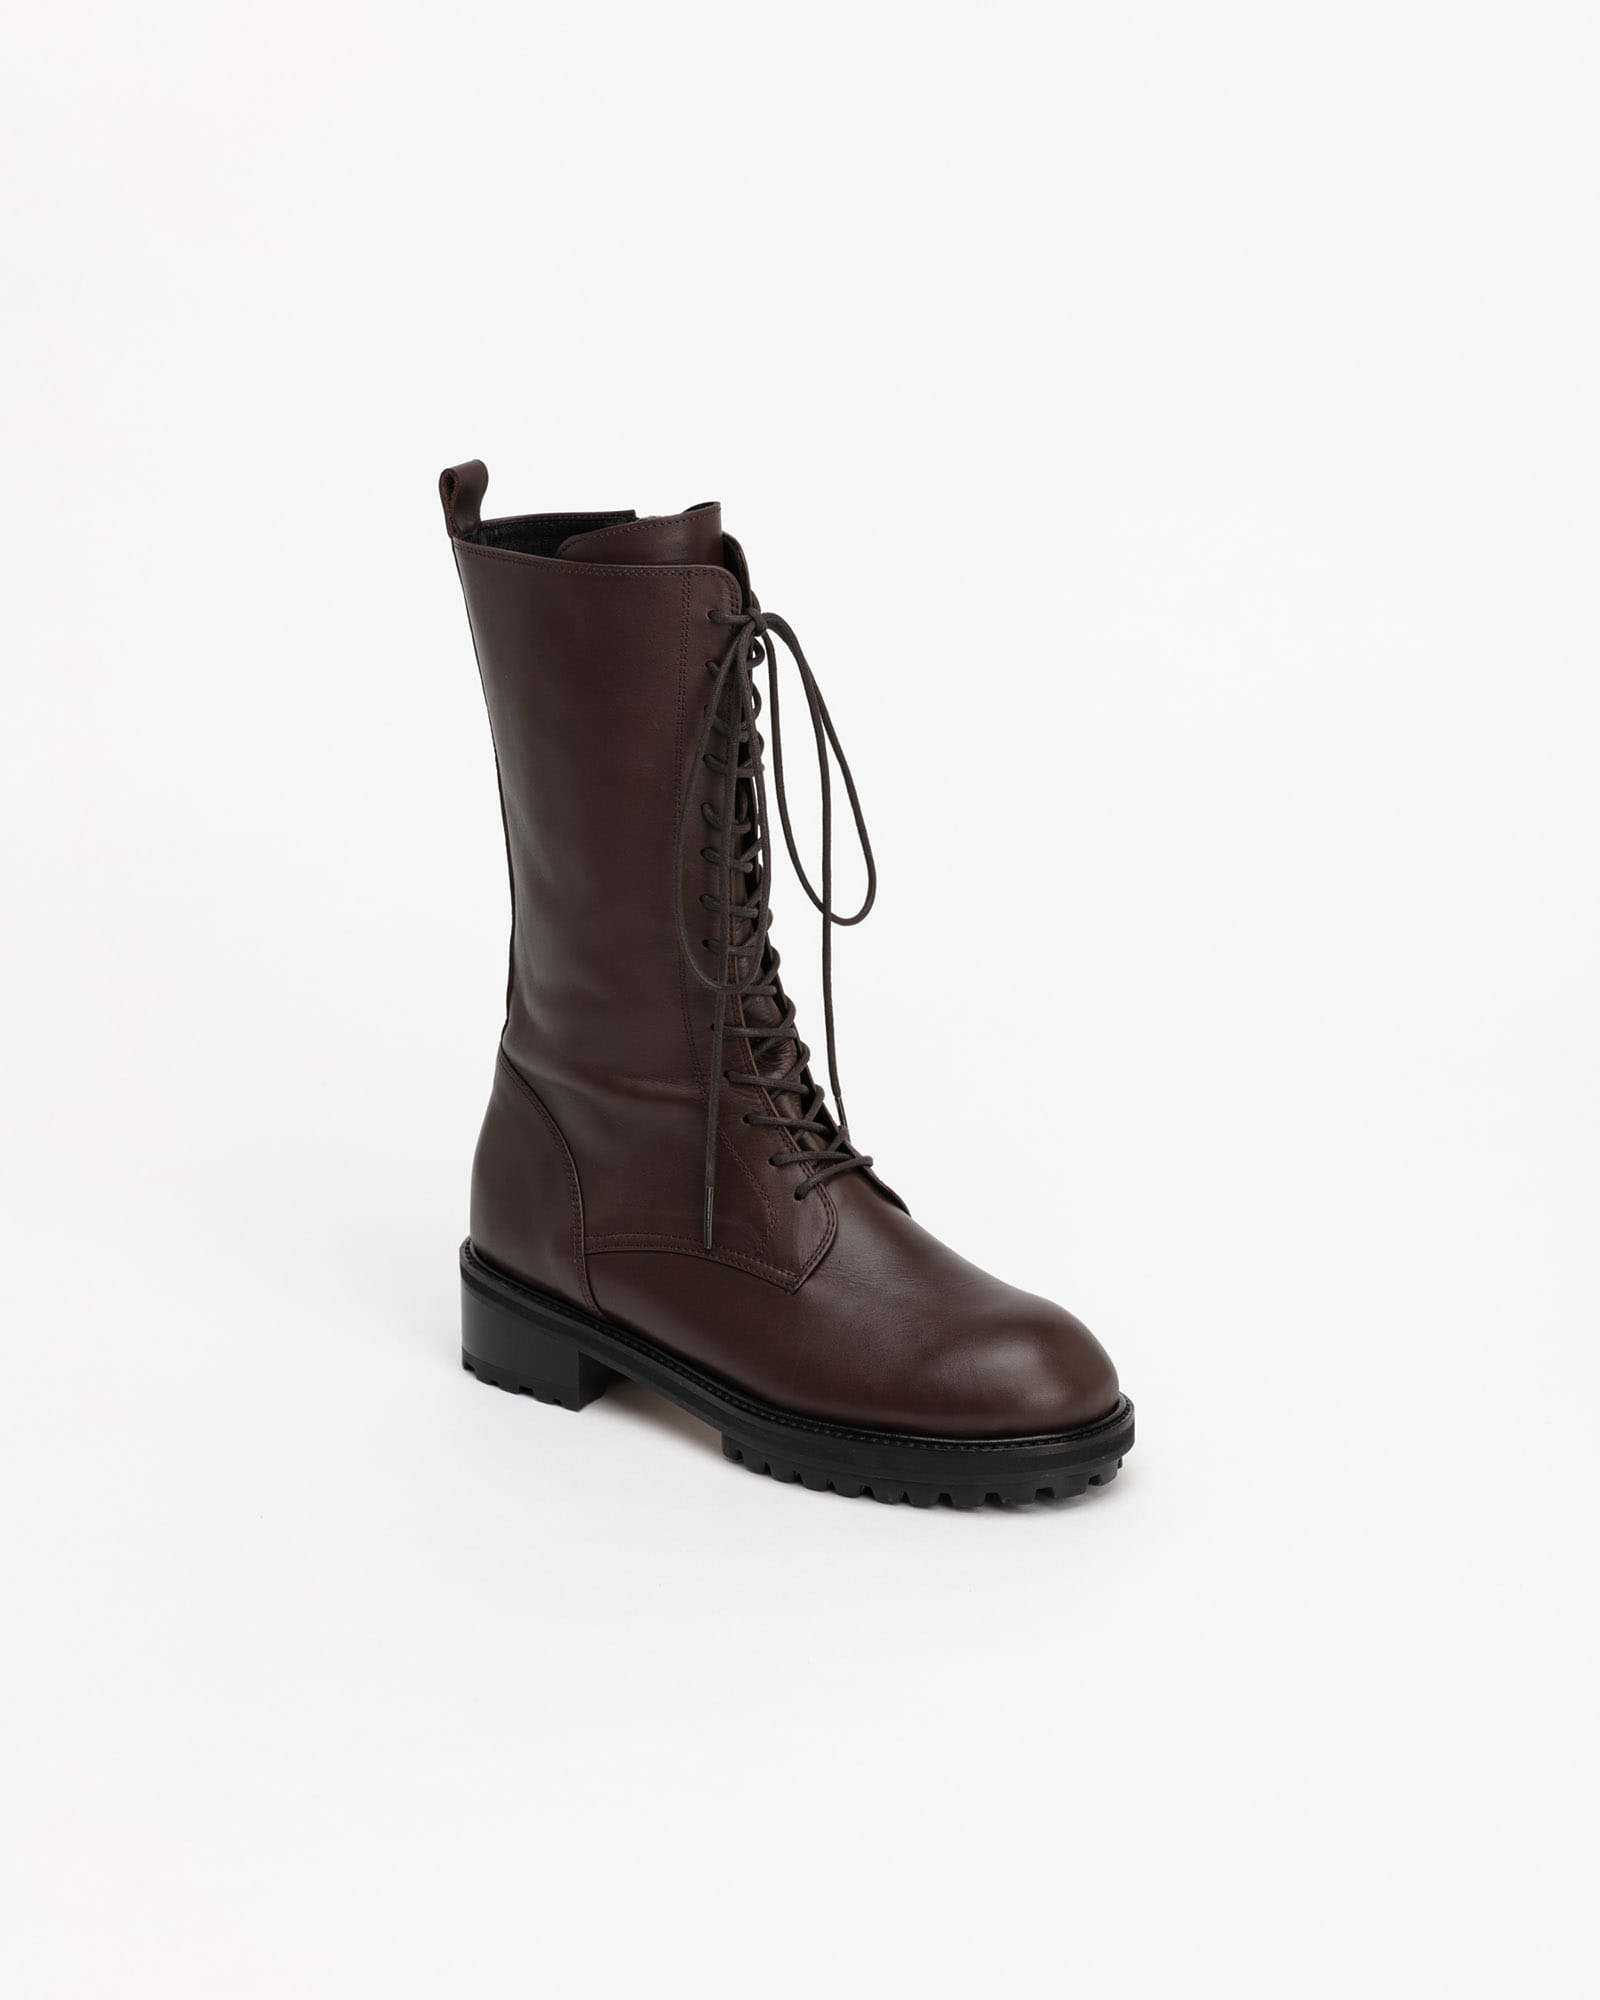 Gotham Combat Boots in Roast Brown